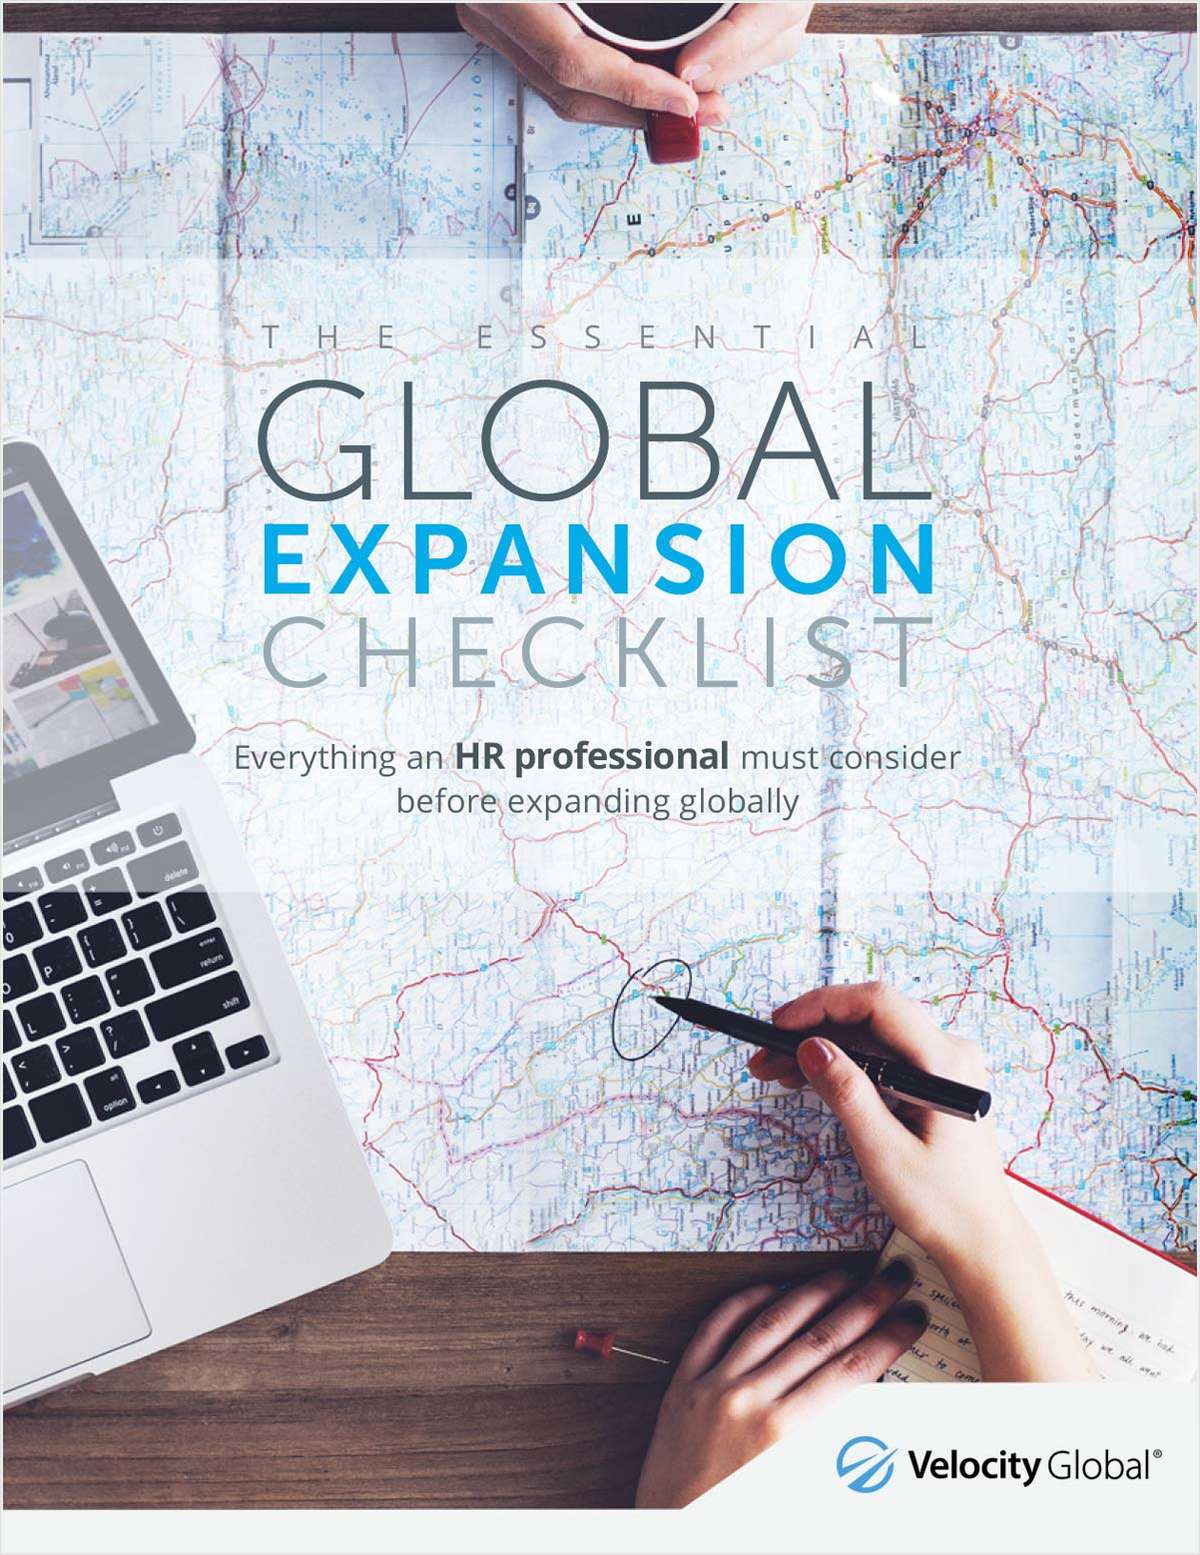 The Essential Global Expansion Checklist for HR Professionals